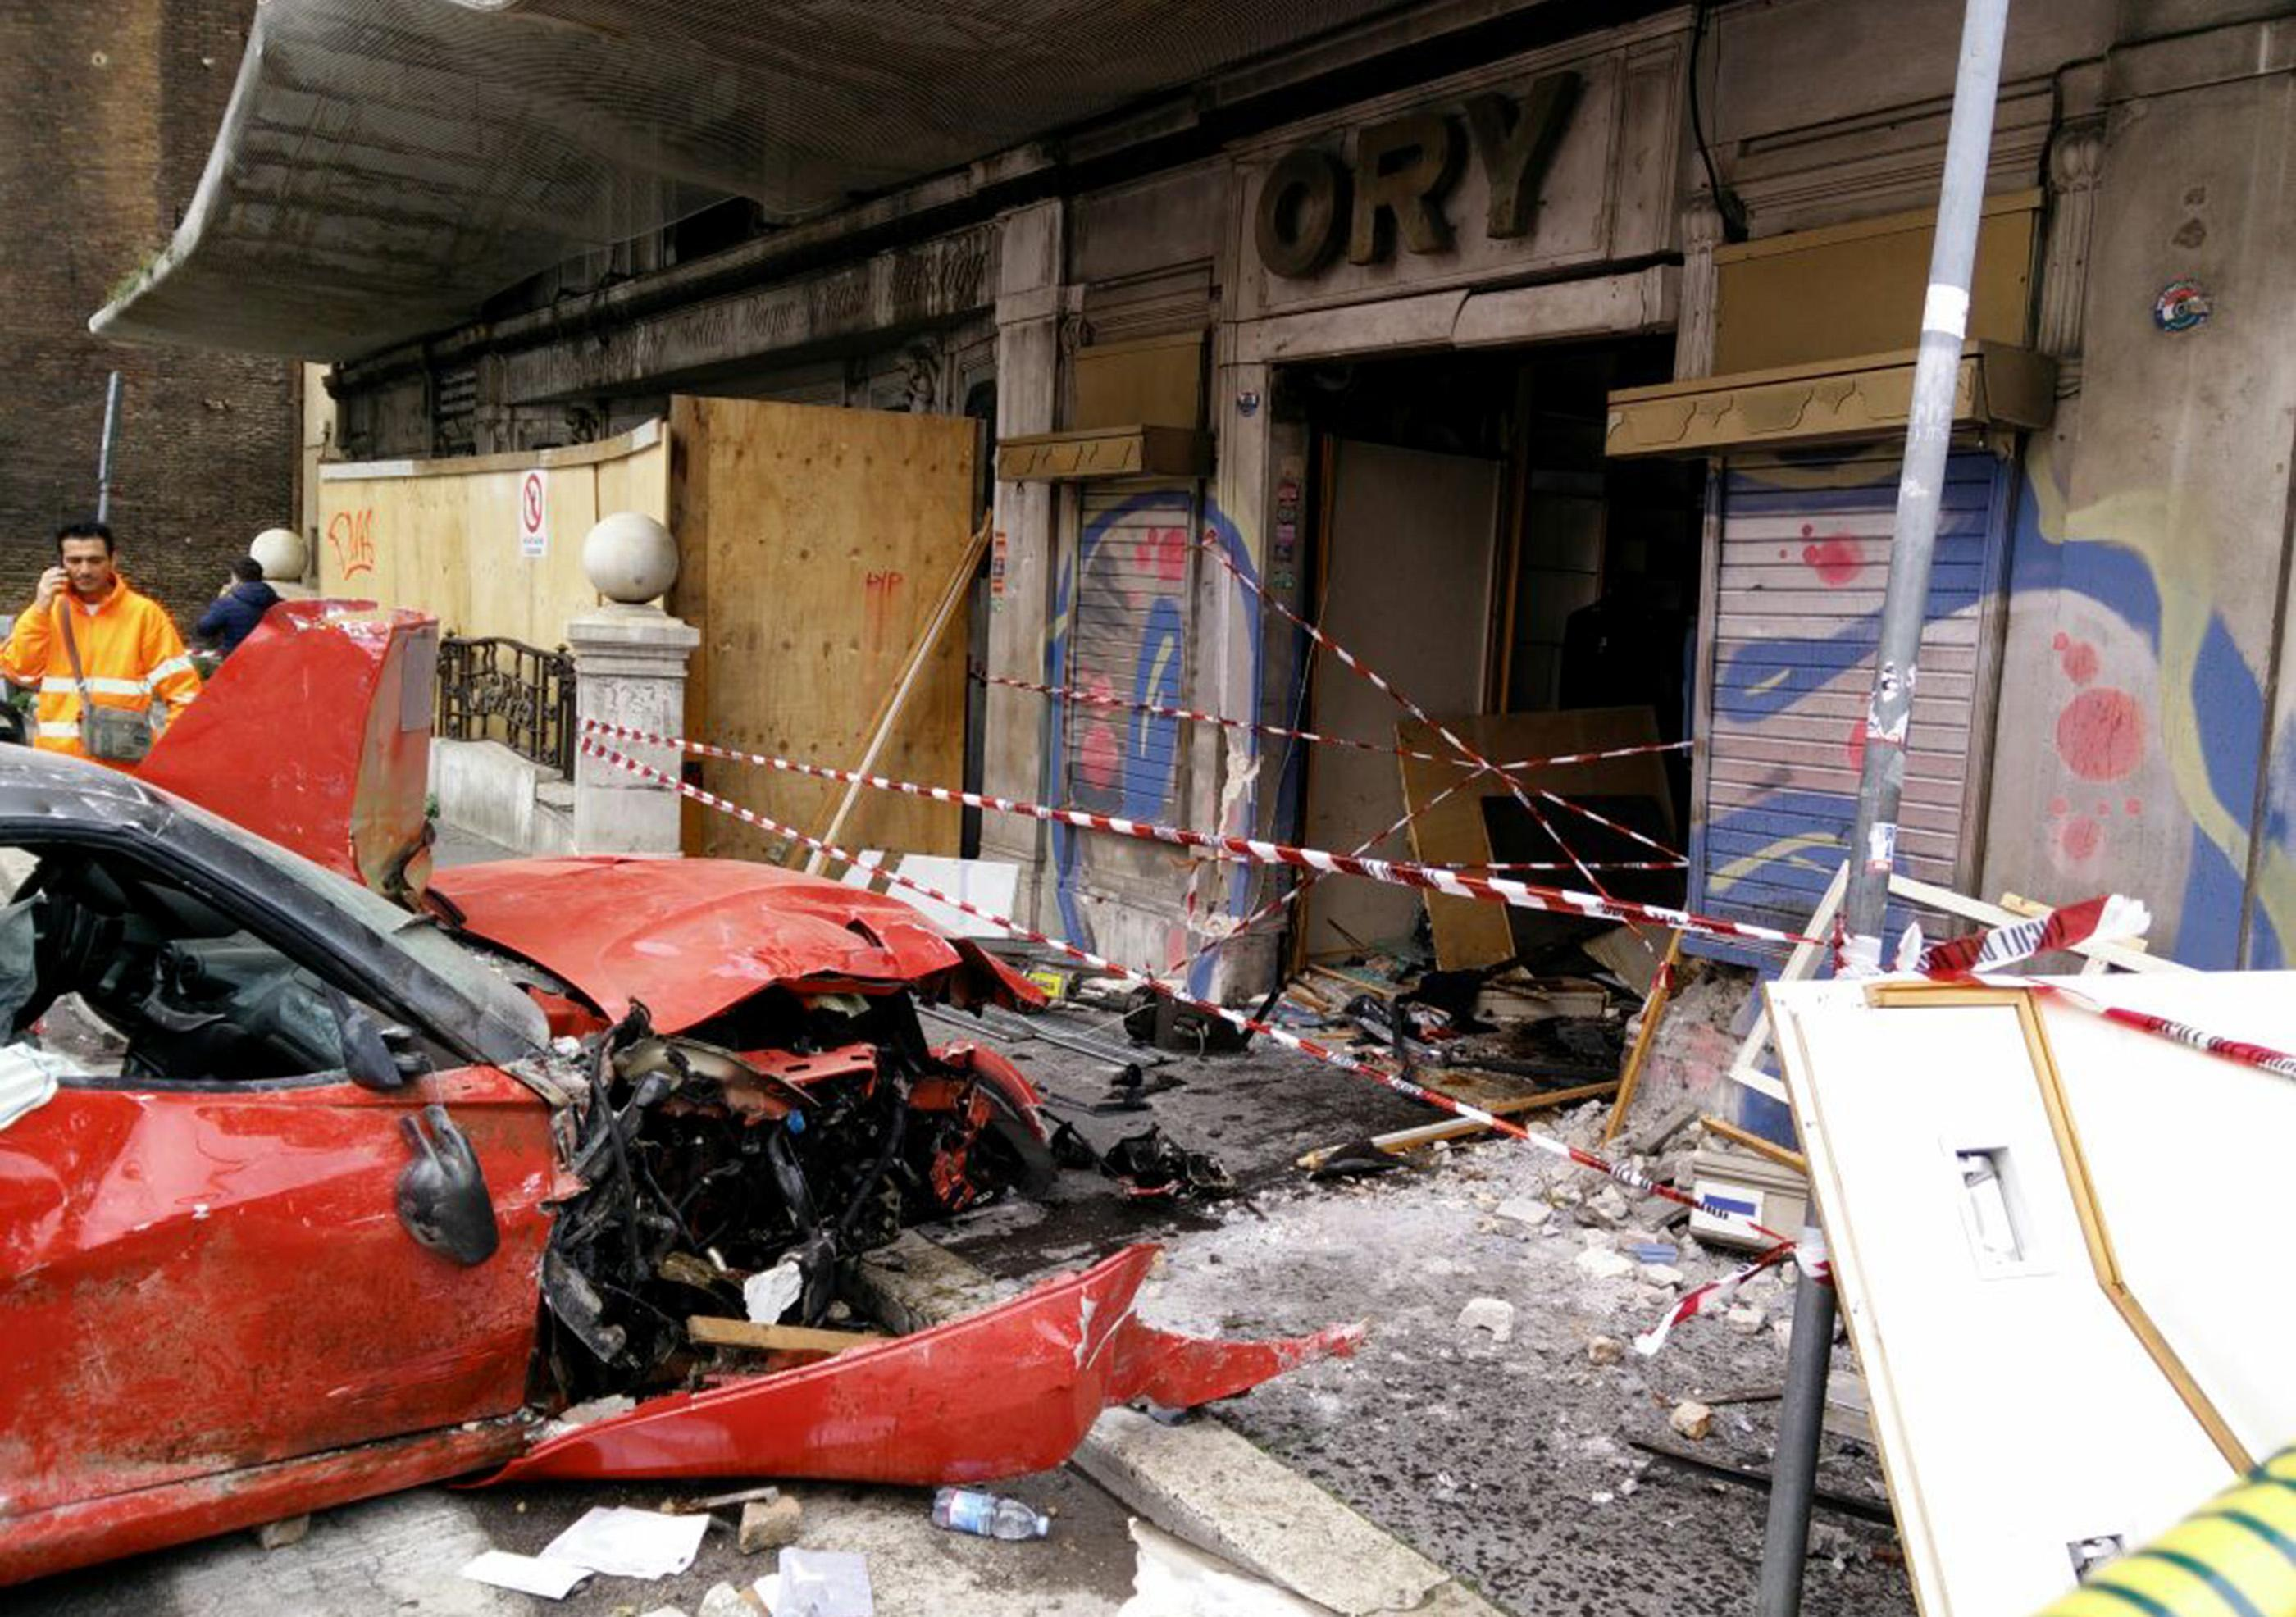 The aftermath following a ferrari 599 GTO which crashed into a shop in Viminale's road in Rome, Italy, on March 30, 2015